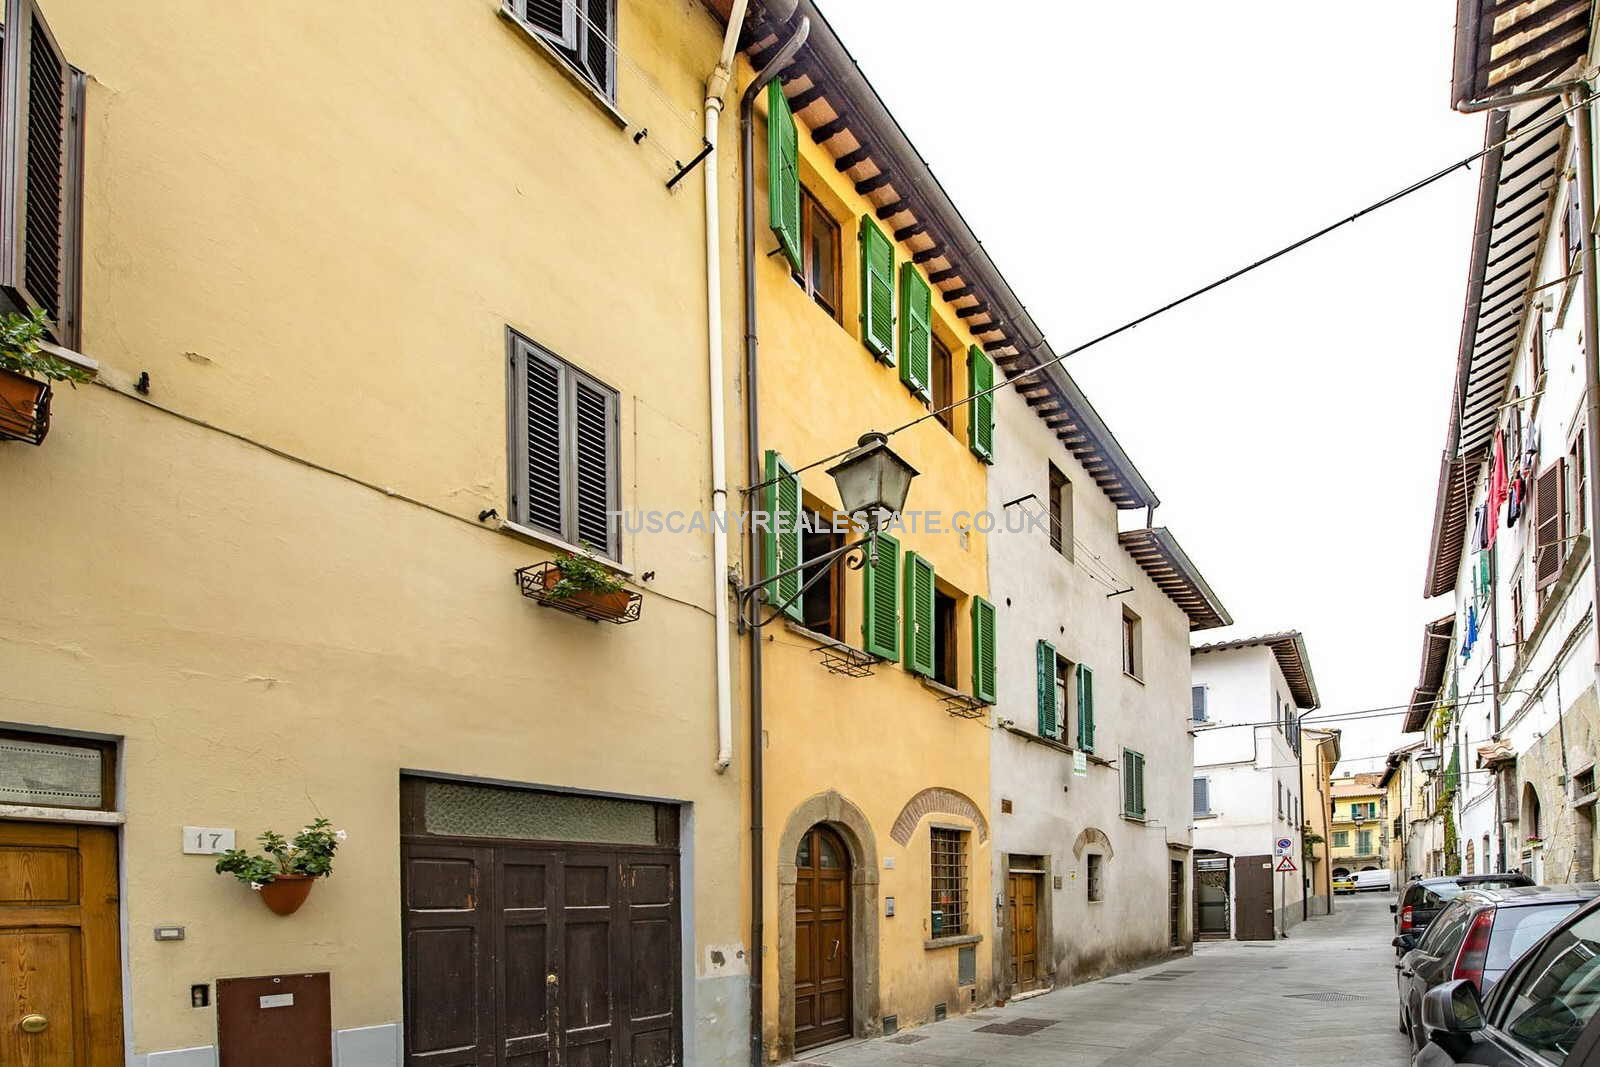 Streetview of Tuscan townhouse for sale